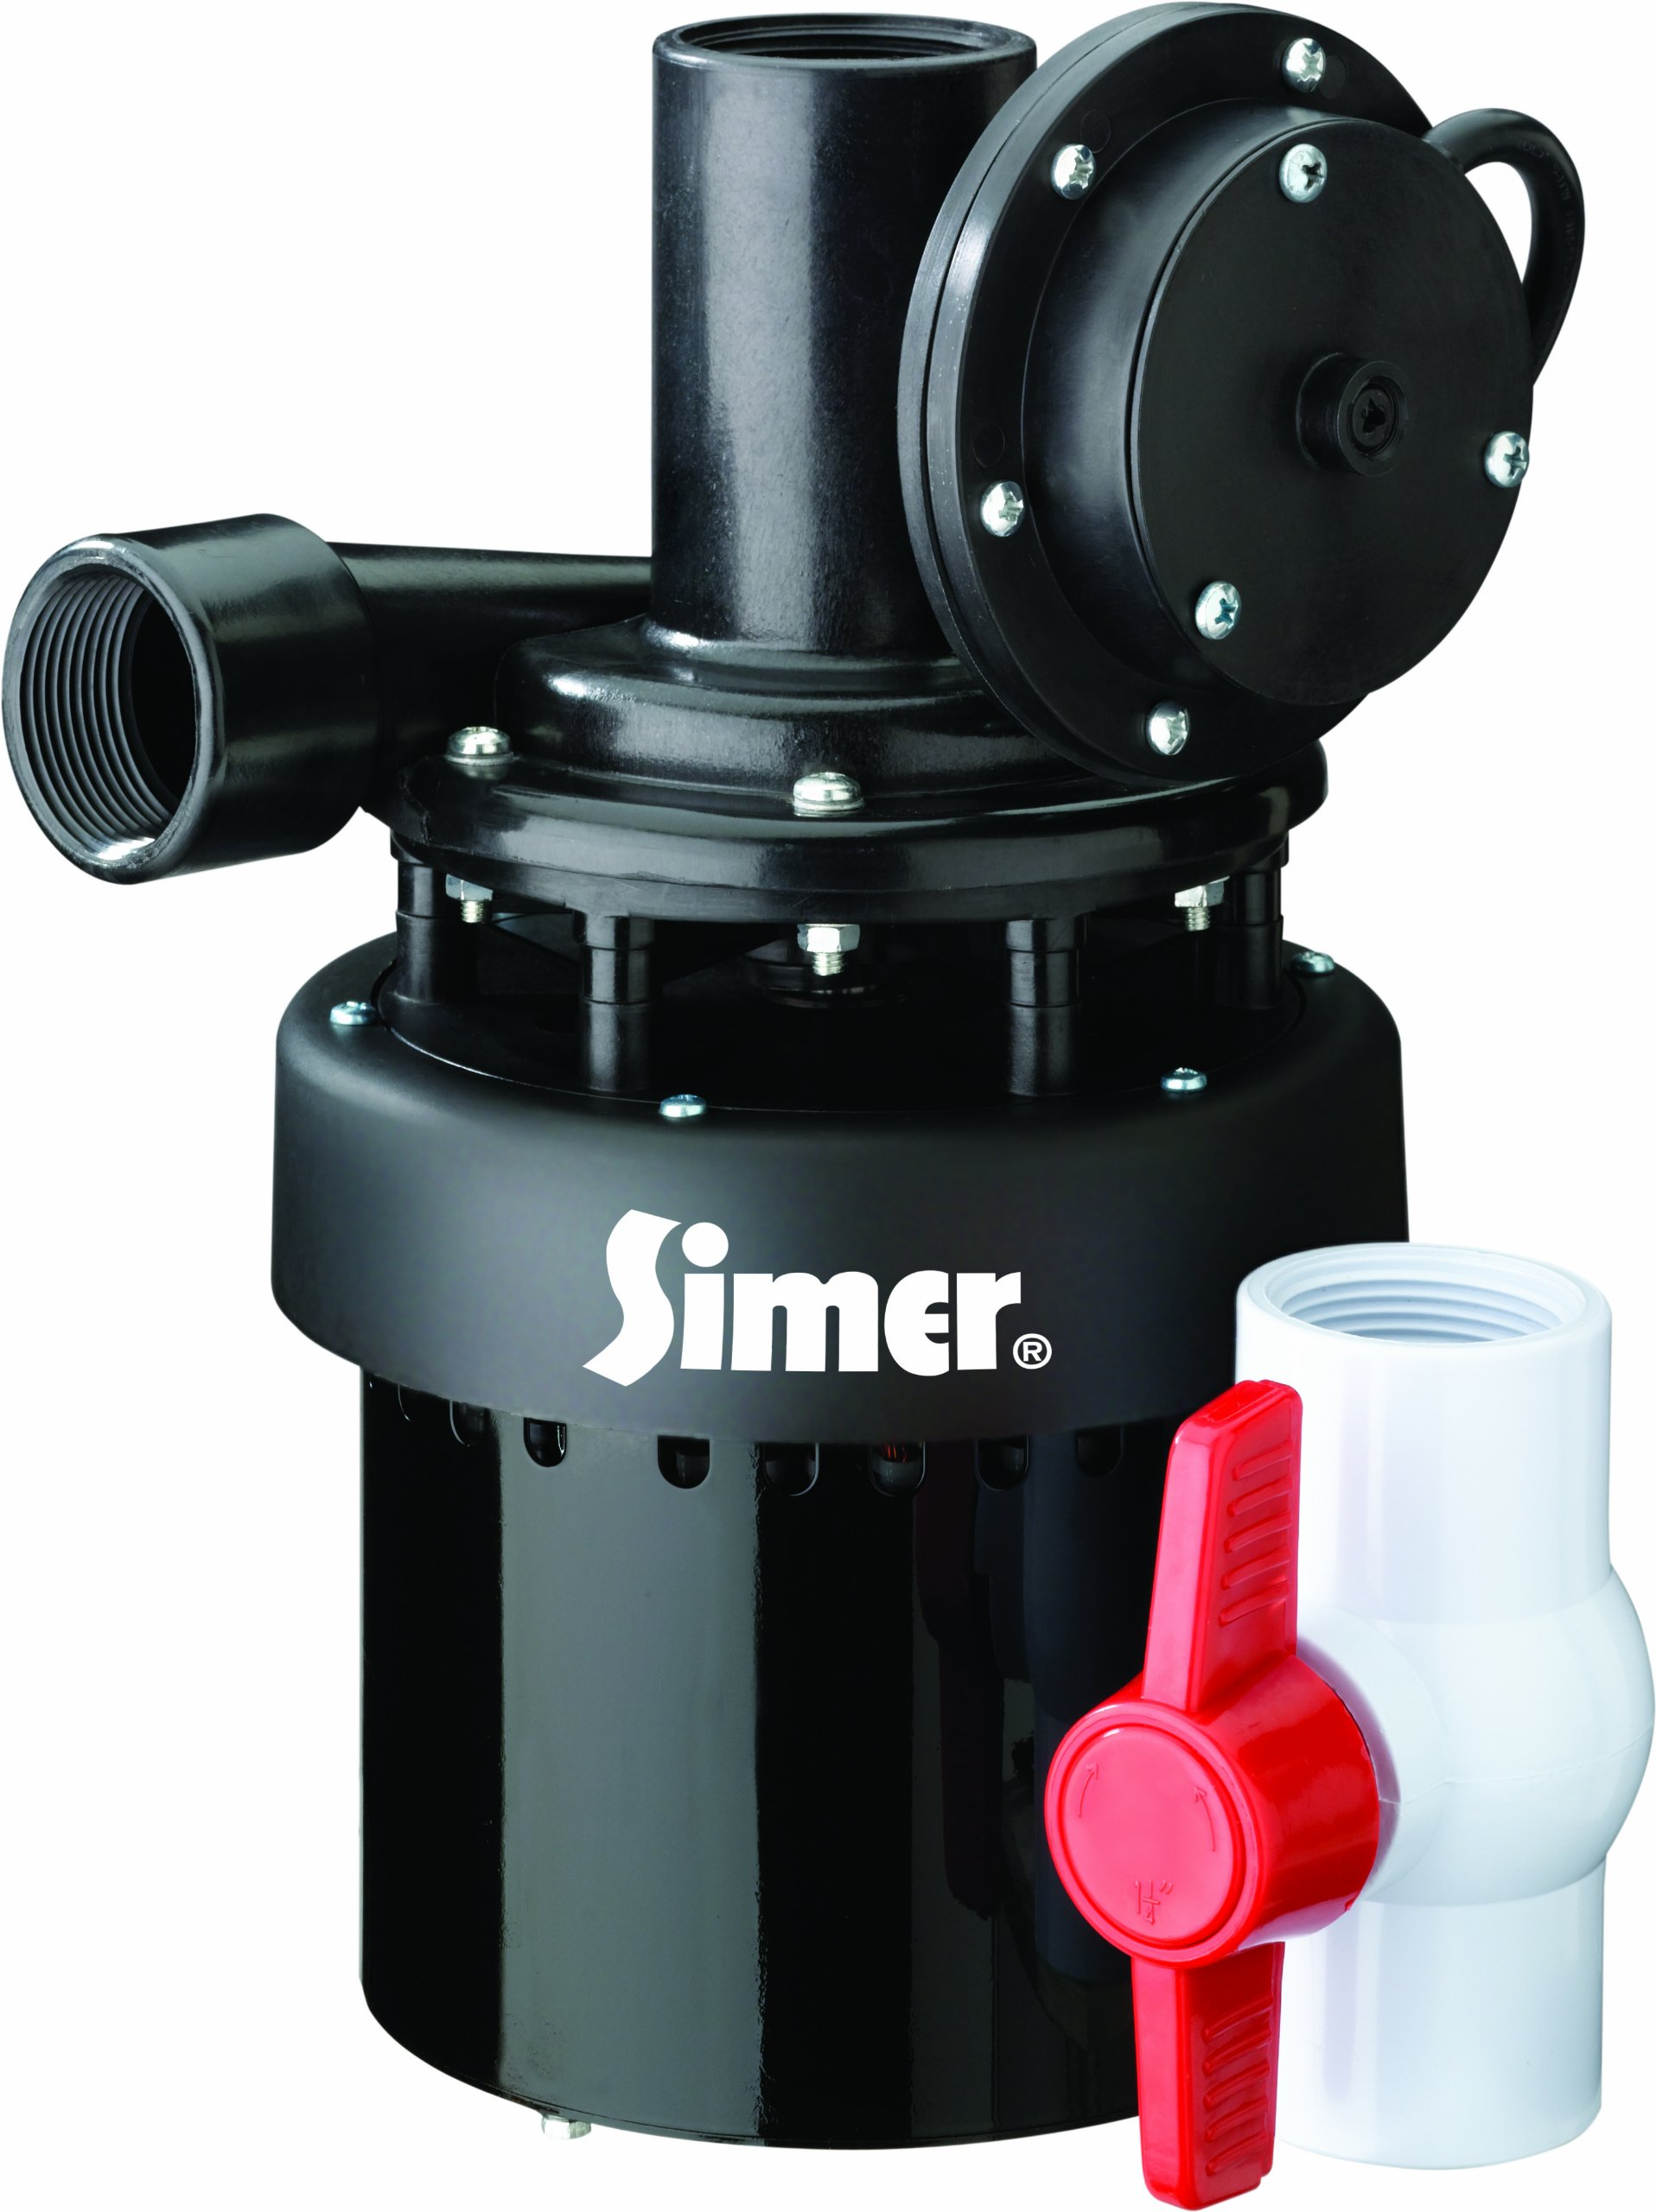 Simer 2935B 1/3 HP Utility Sink Sump Pump by Simer